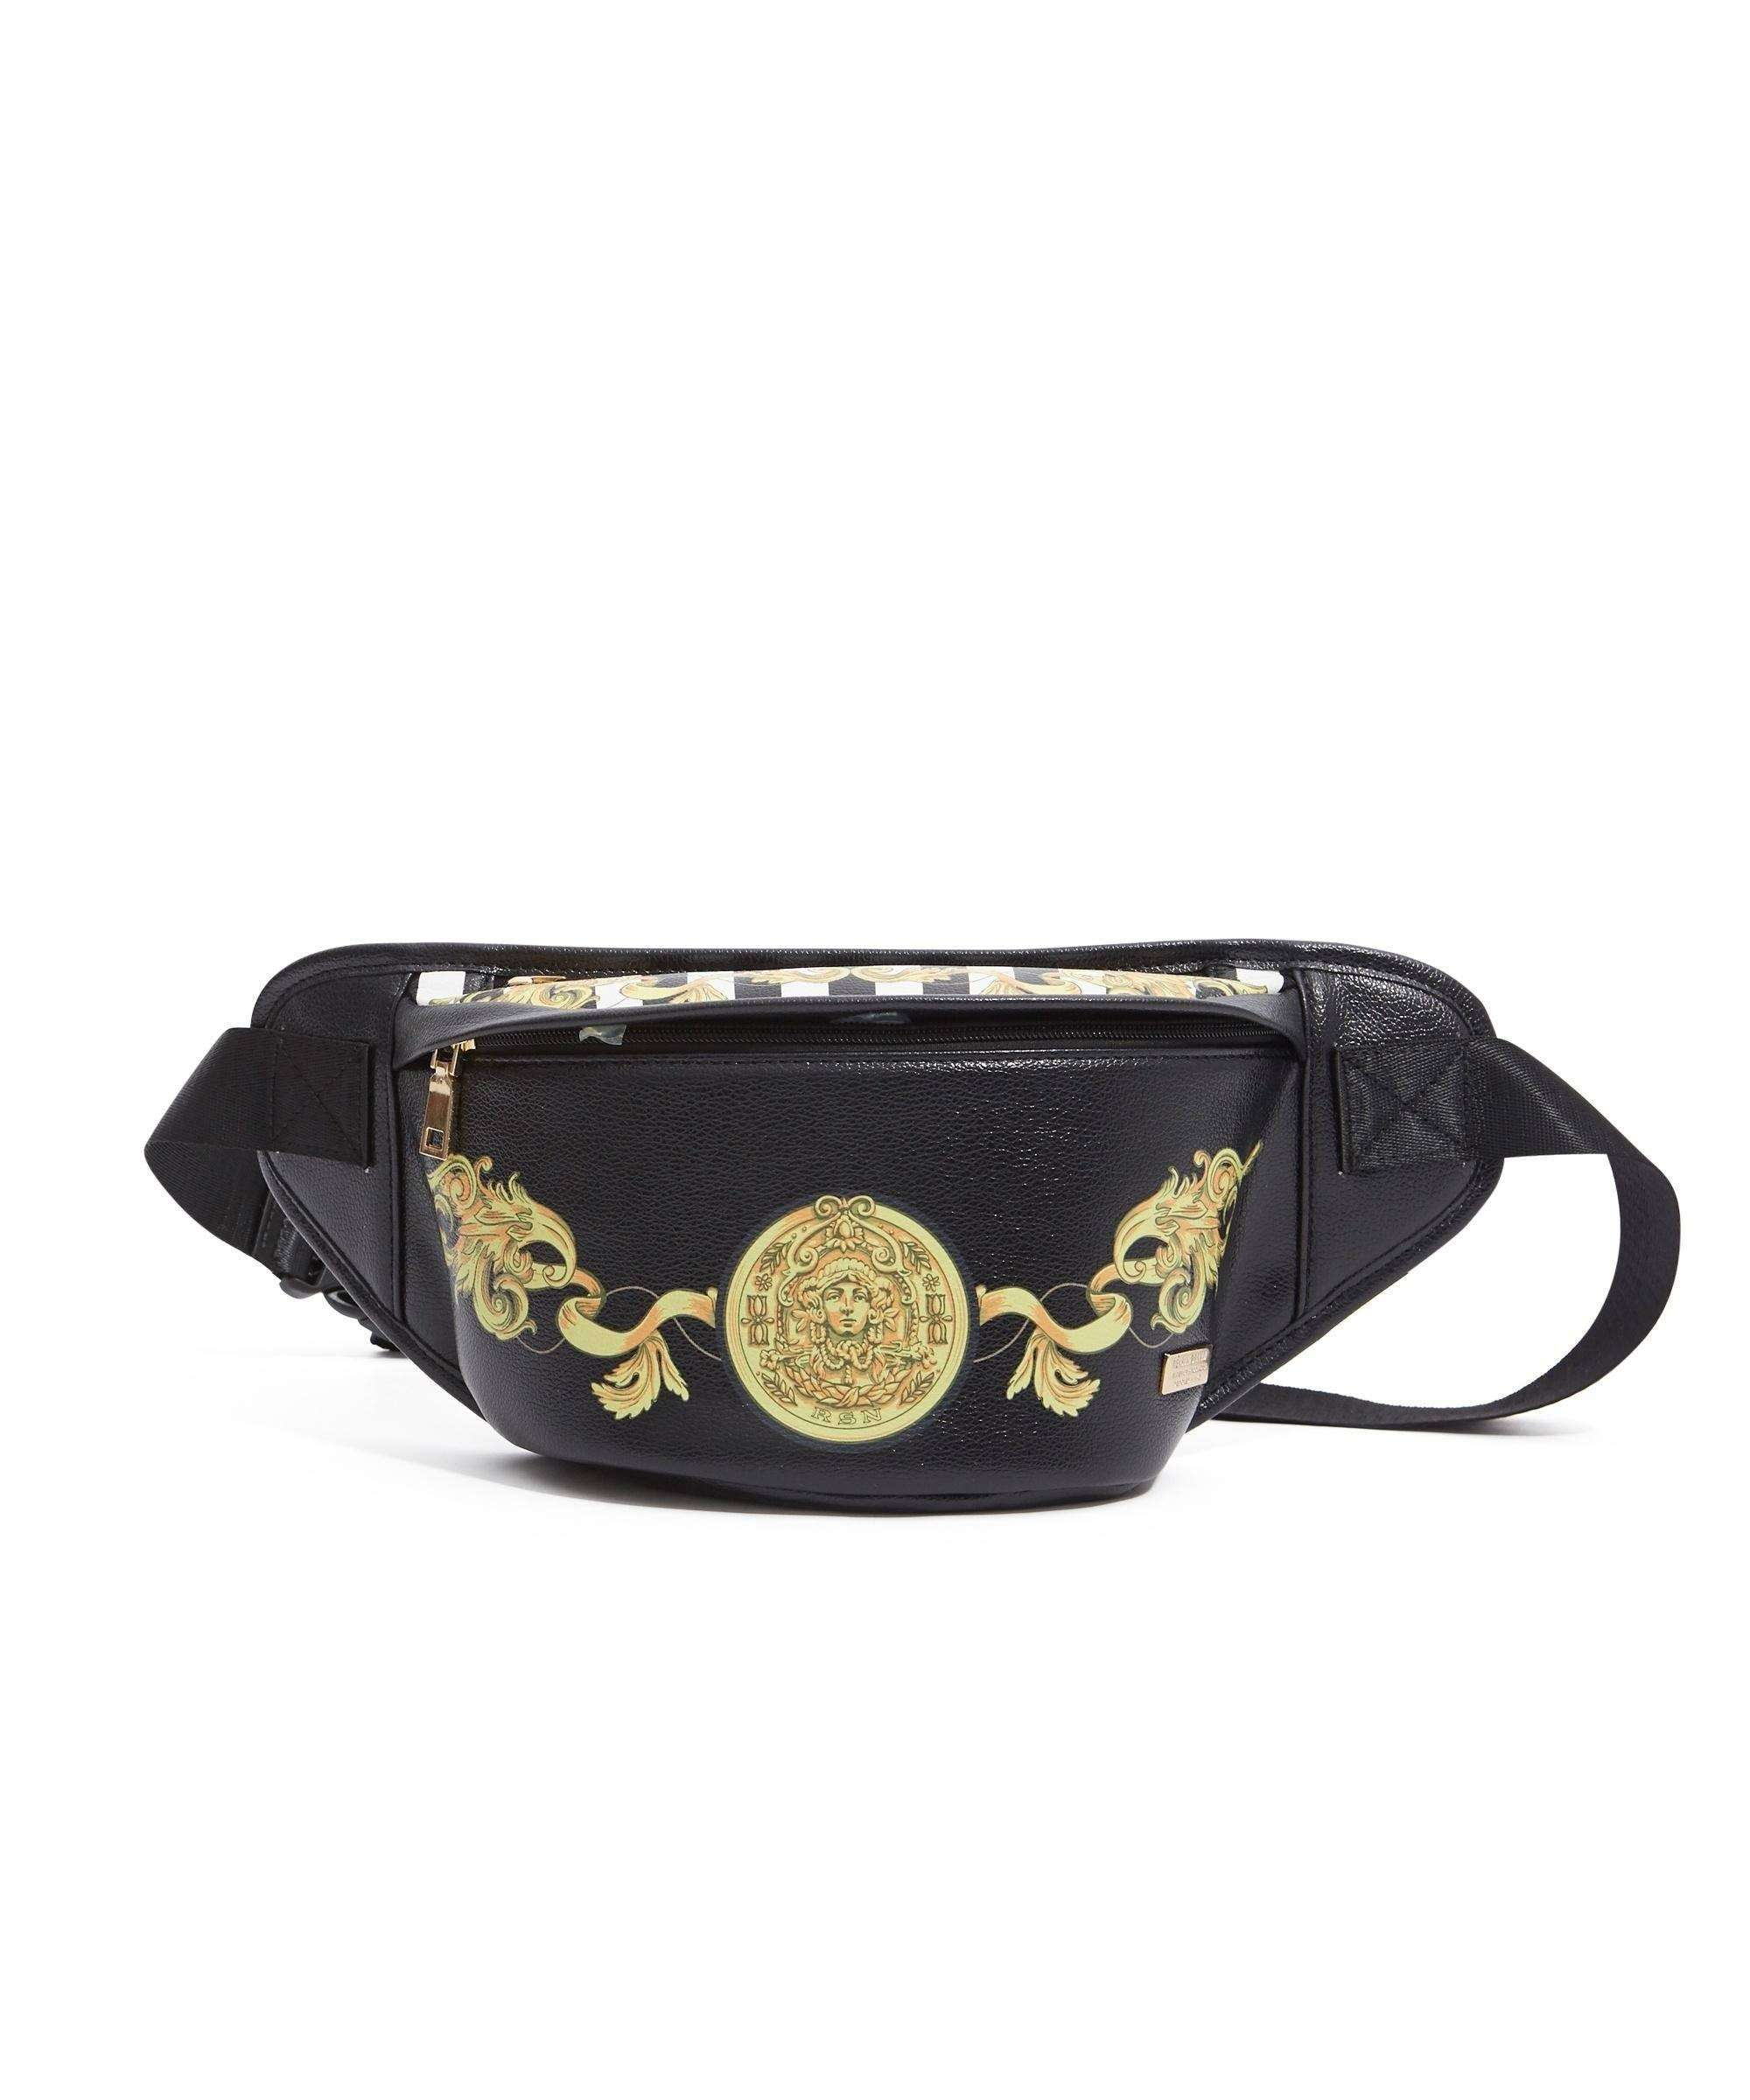 VERONA BELT BAG Reason Clothing